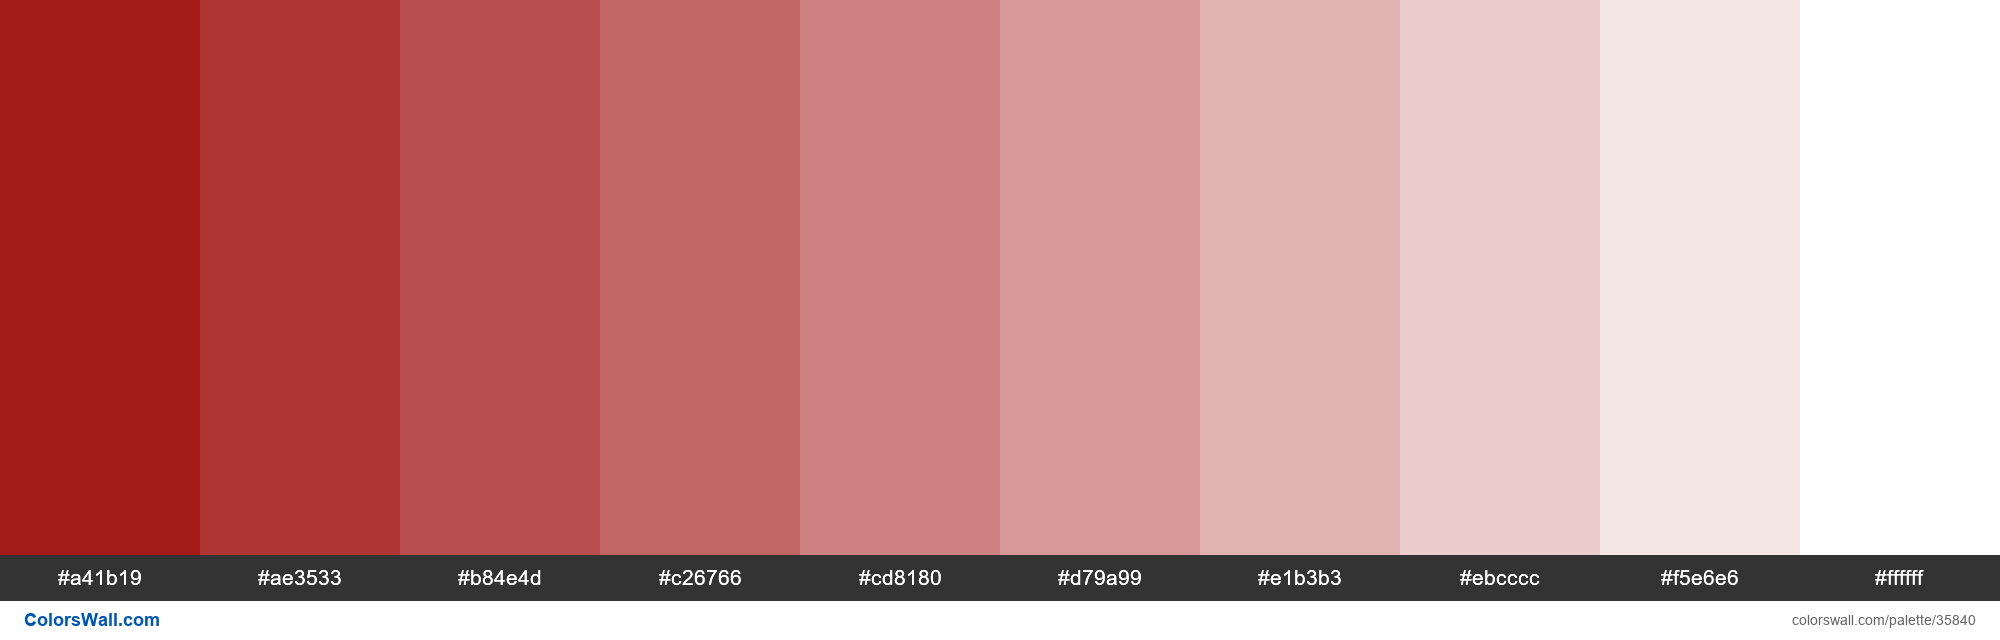 Tints XKCD Color deep red #9a0200 hex - #35840